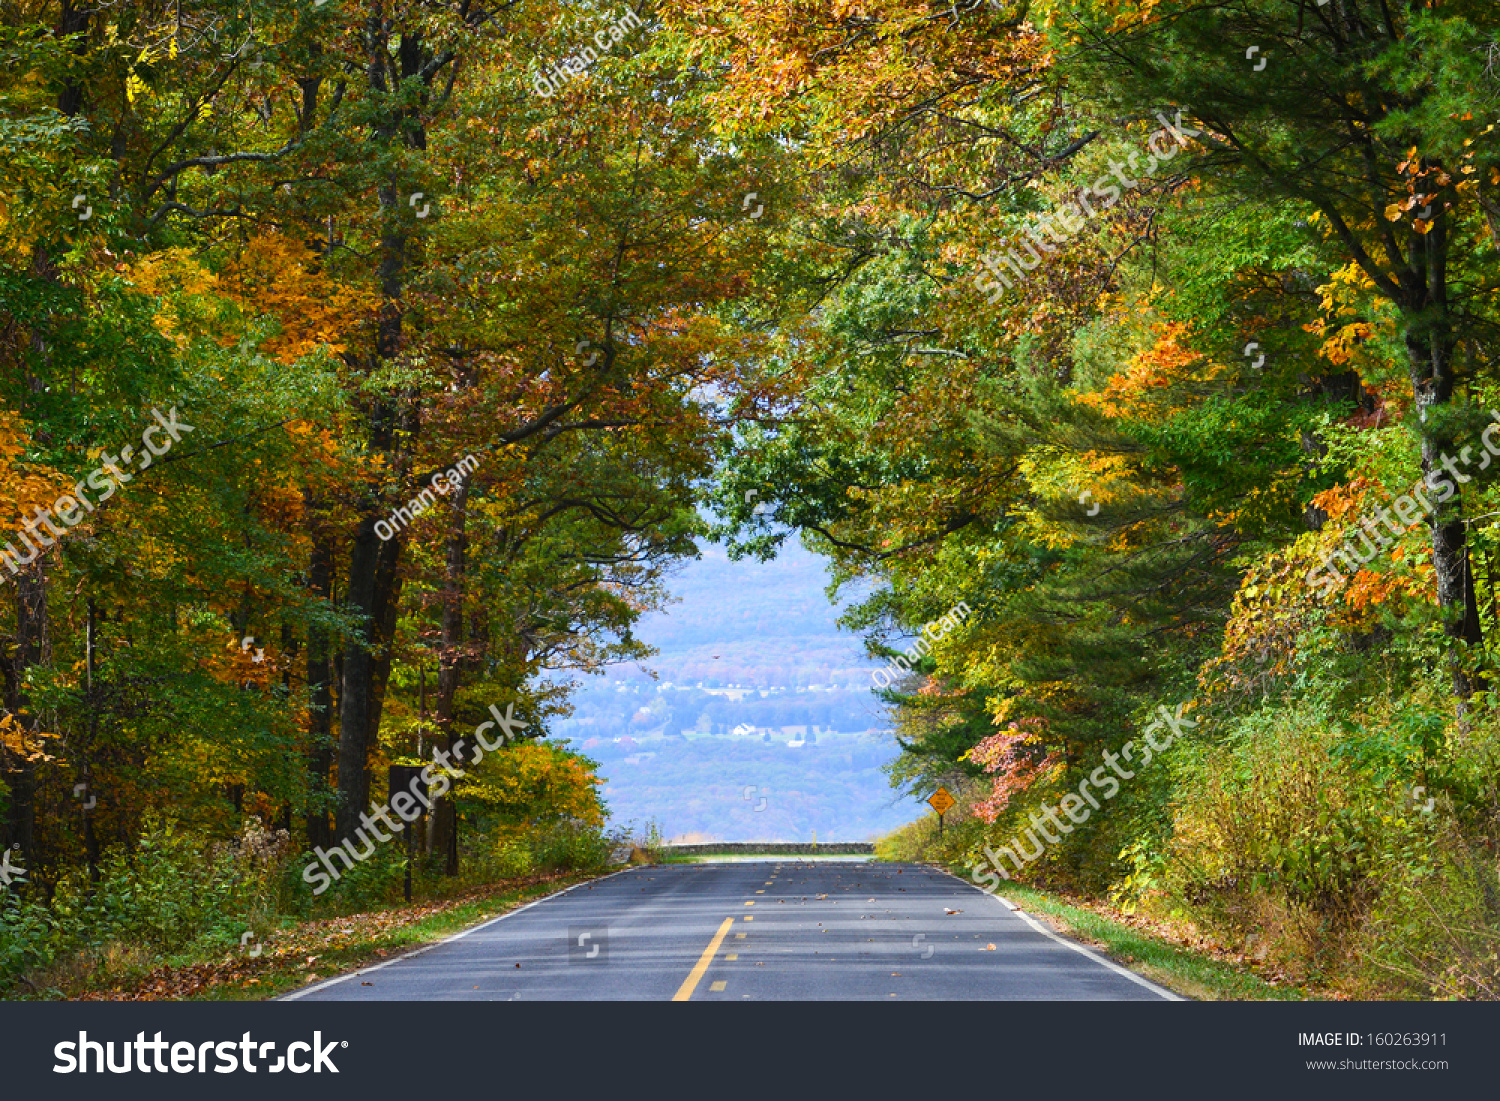 Asphalt Road Among Autumn Trees Which Stock Photo (Royalty Free ...